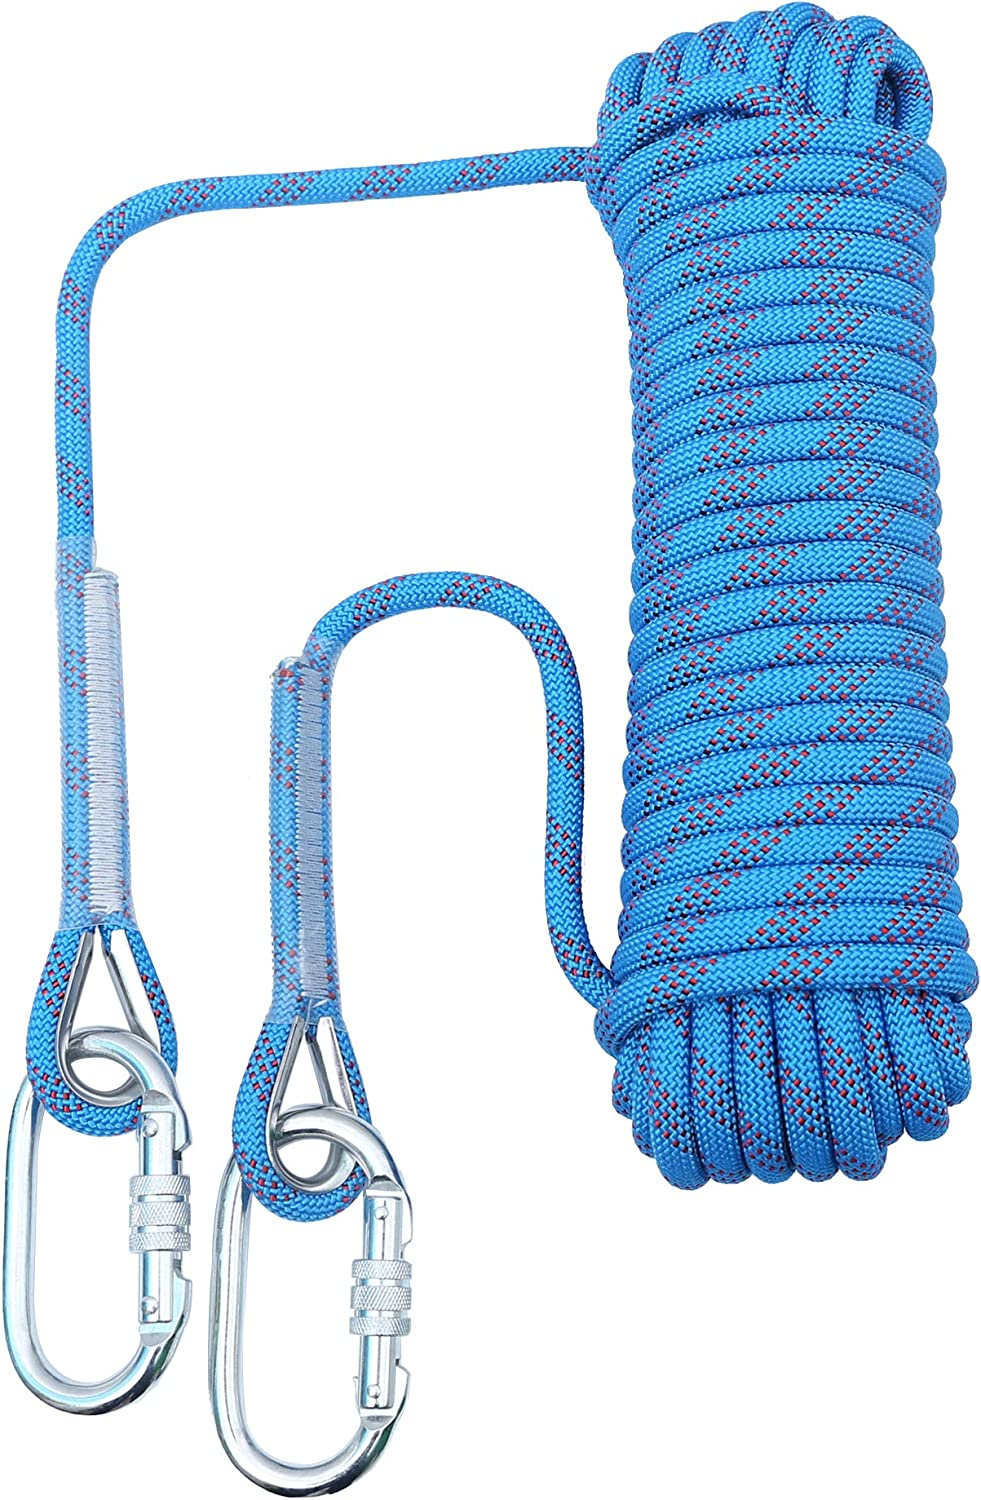 orgphys Rock Climbing Rope 32 Feet Blue Diameter 10mm High-Strength Rappelling Rope for Mountaineering Escape Training Rescue